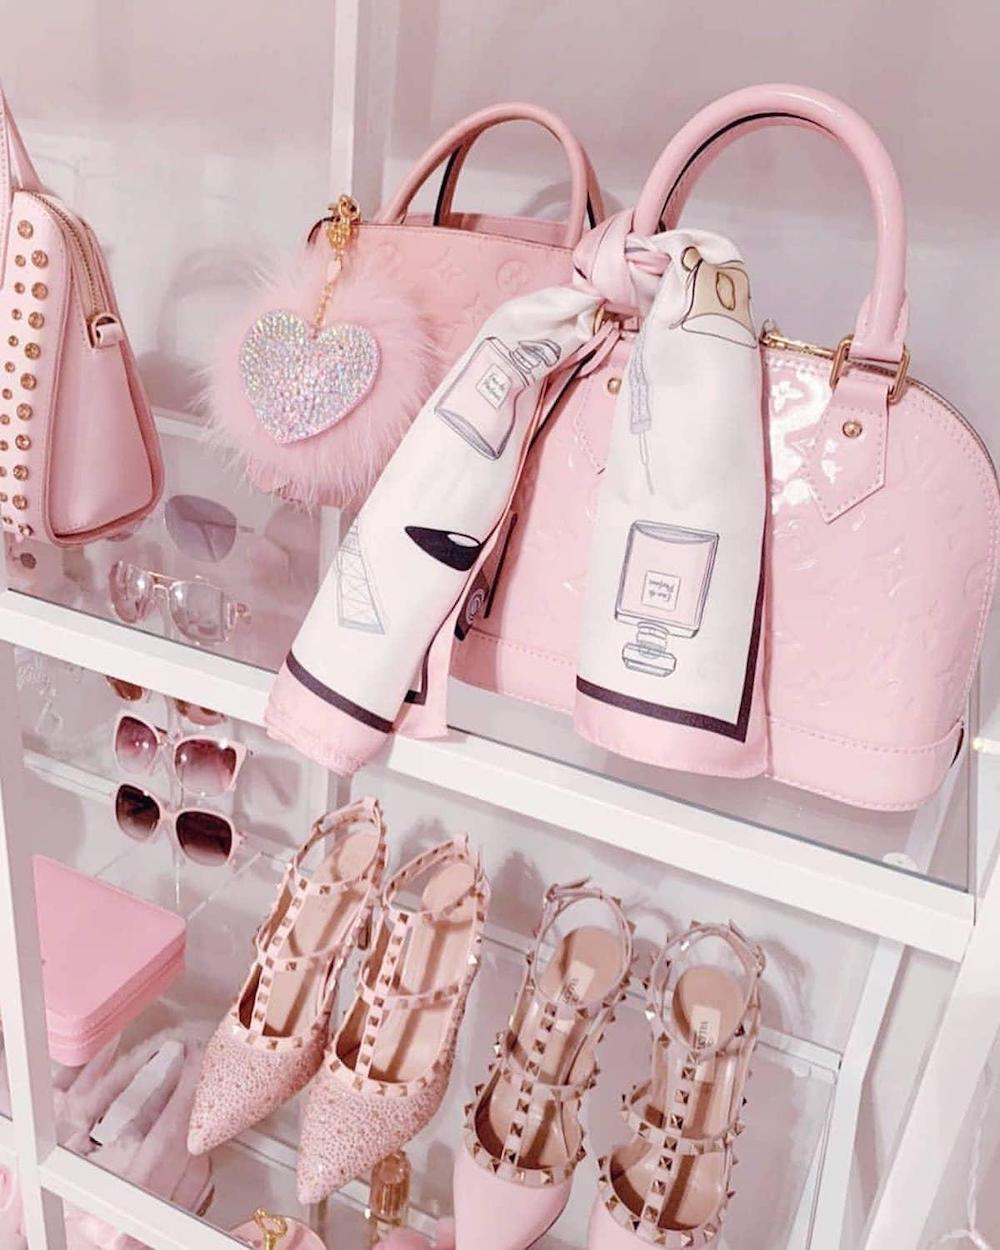 Cute pink handbag on Valentine's Day is definitely what she wants